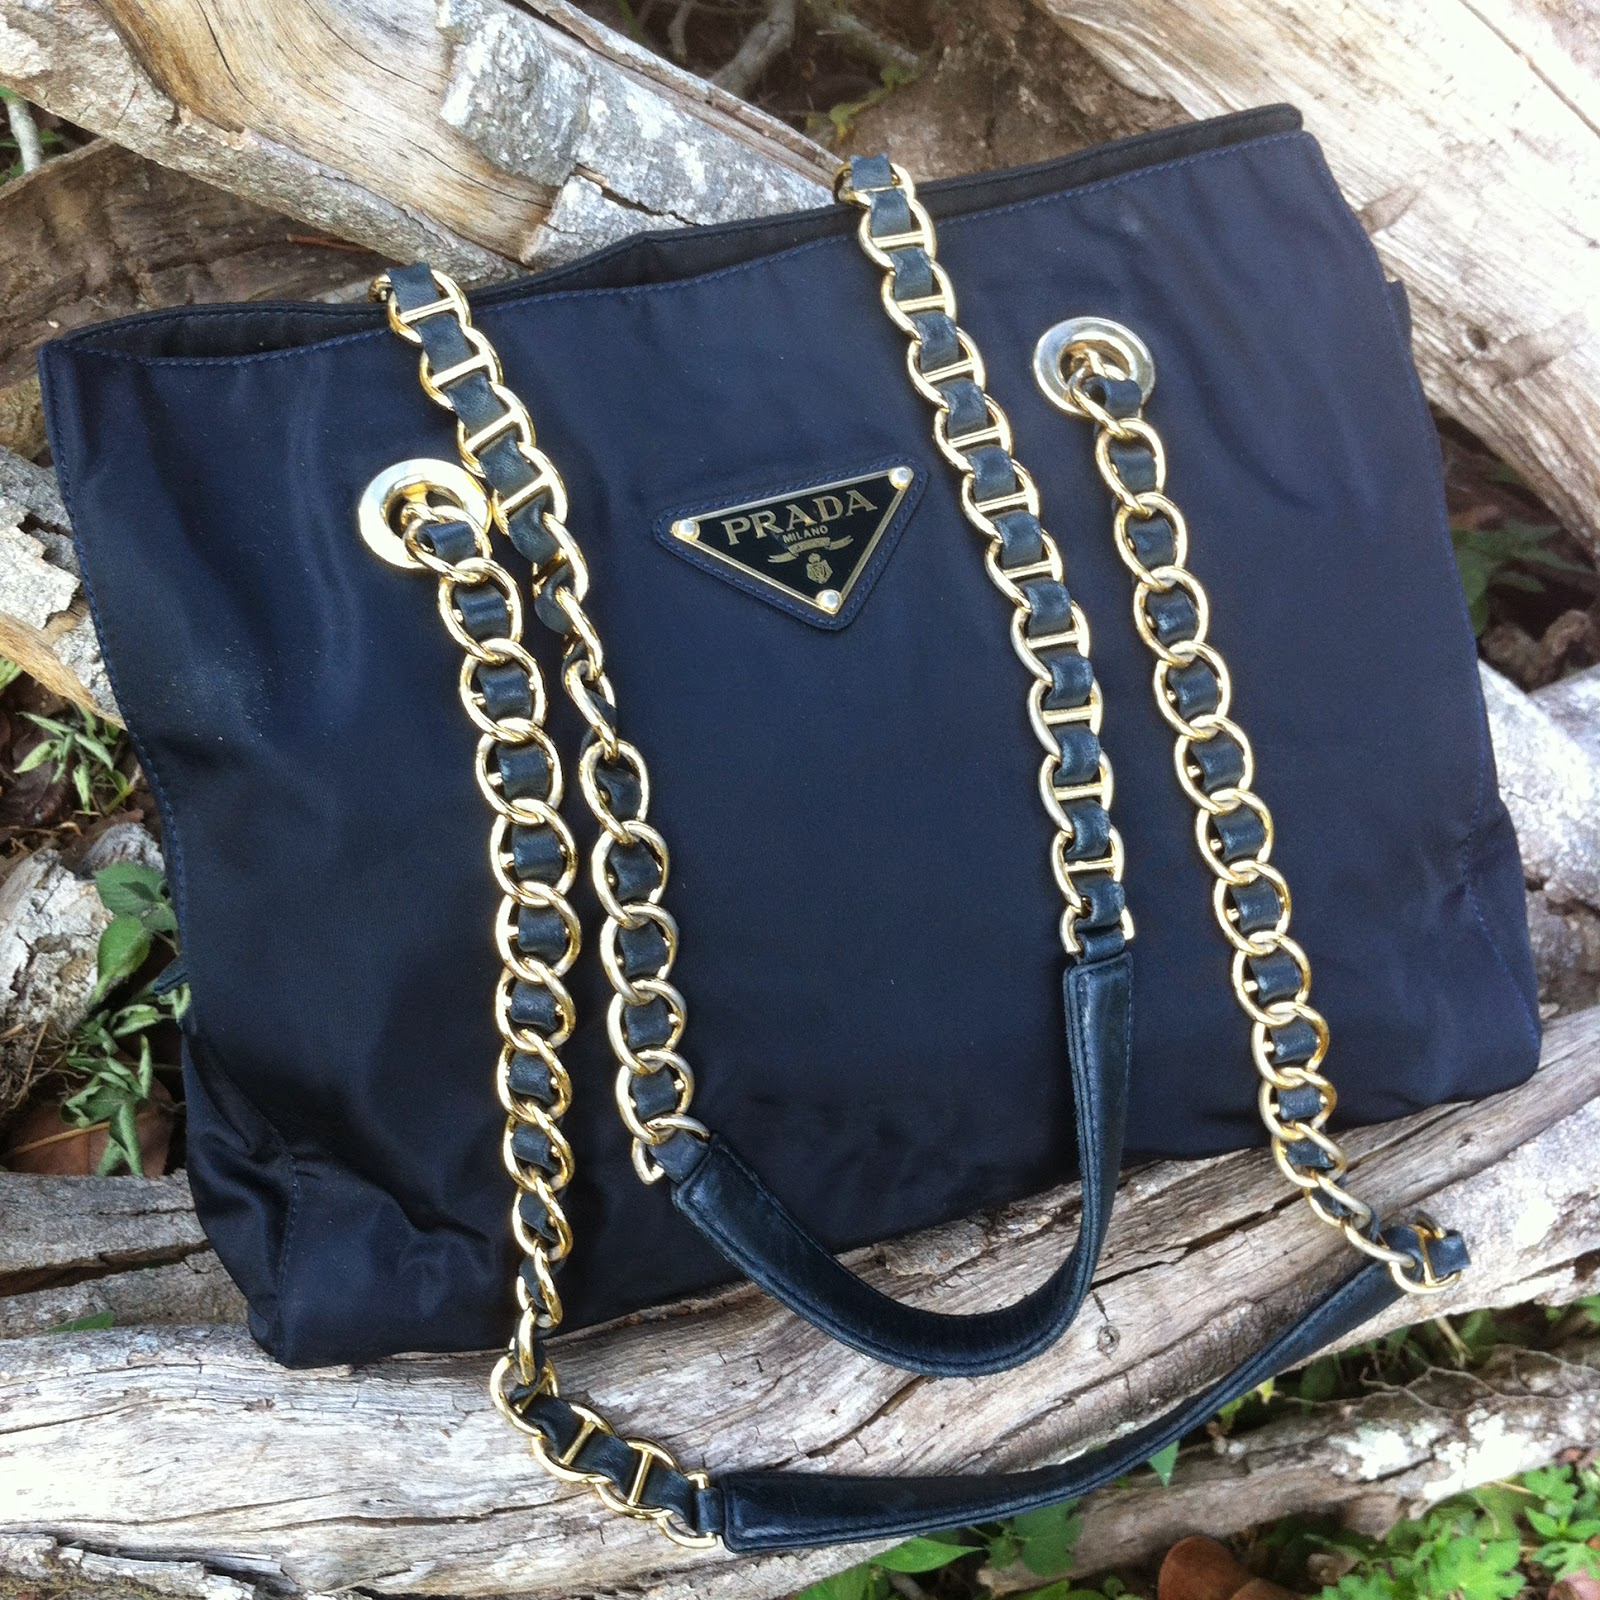 Prada Bag With Gold Chain